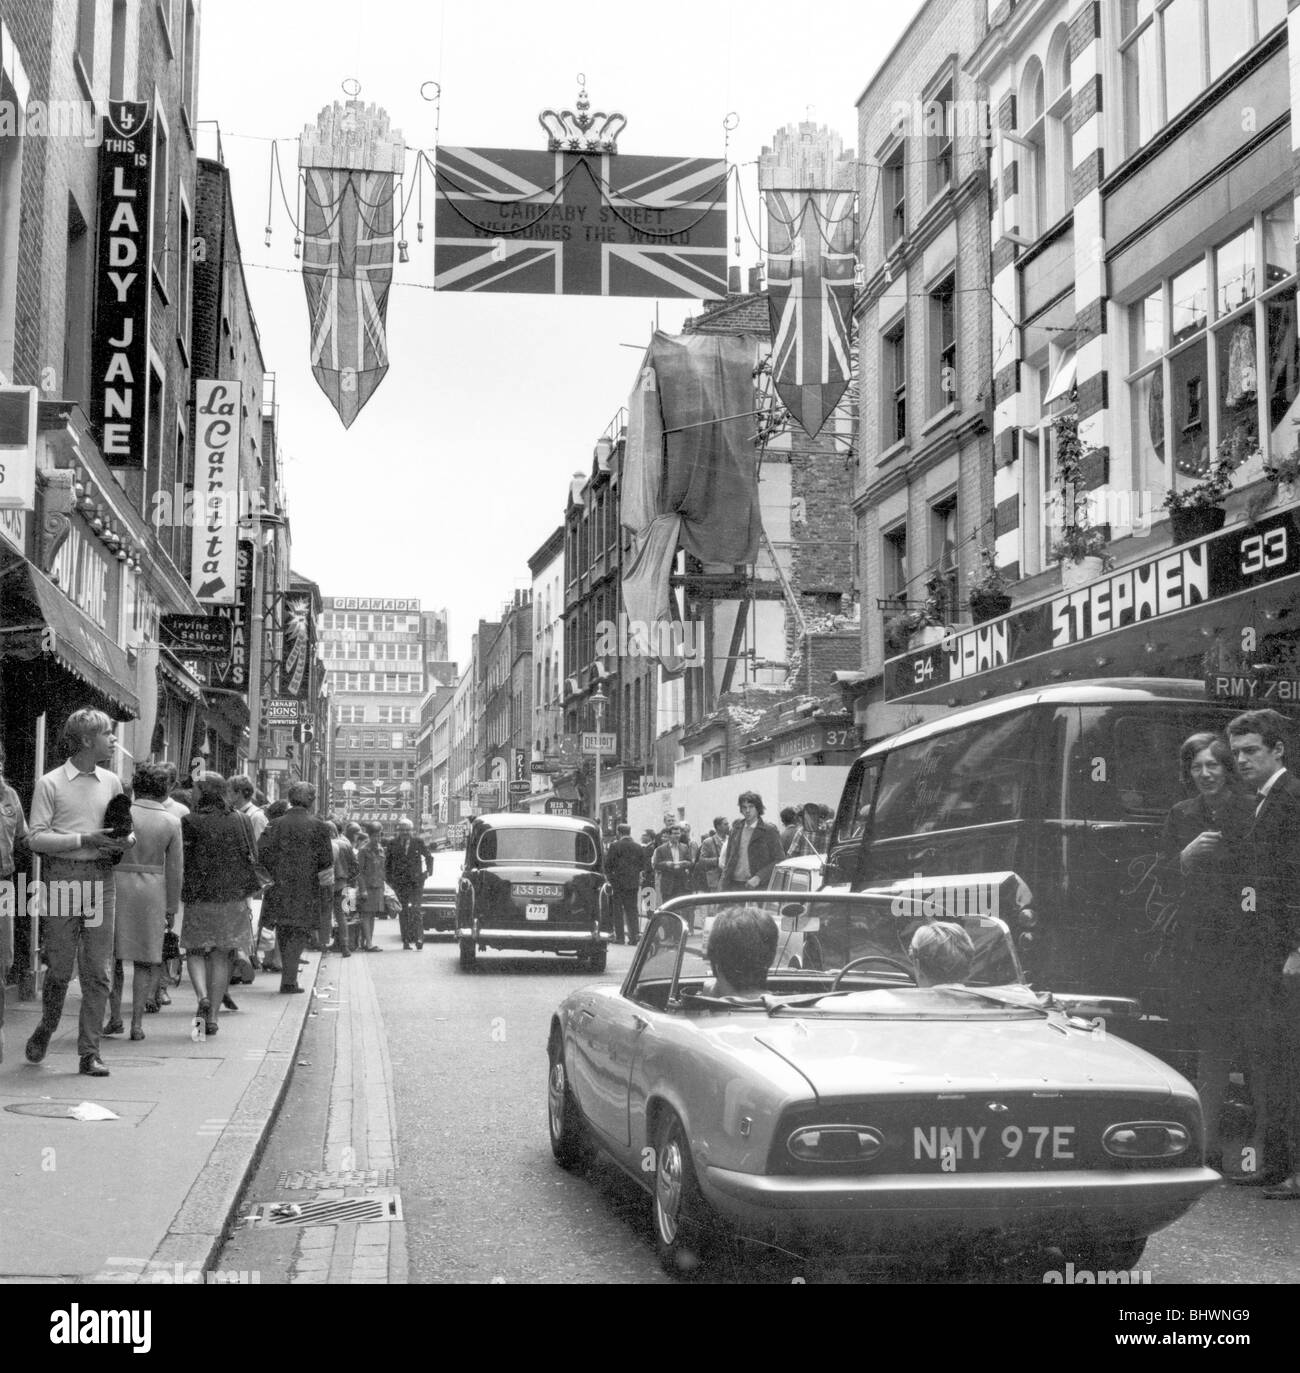 Shoppers on Carnaby Street, London, 1968. Artist: Henry Grant - Stock Image